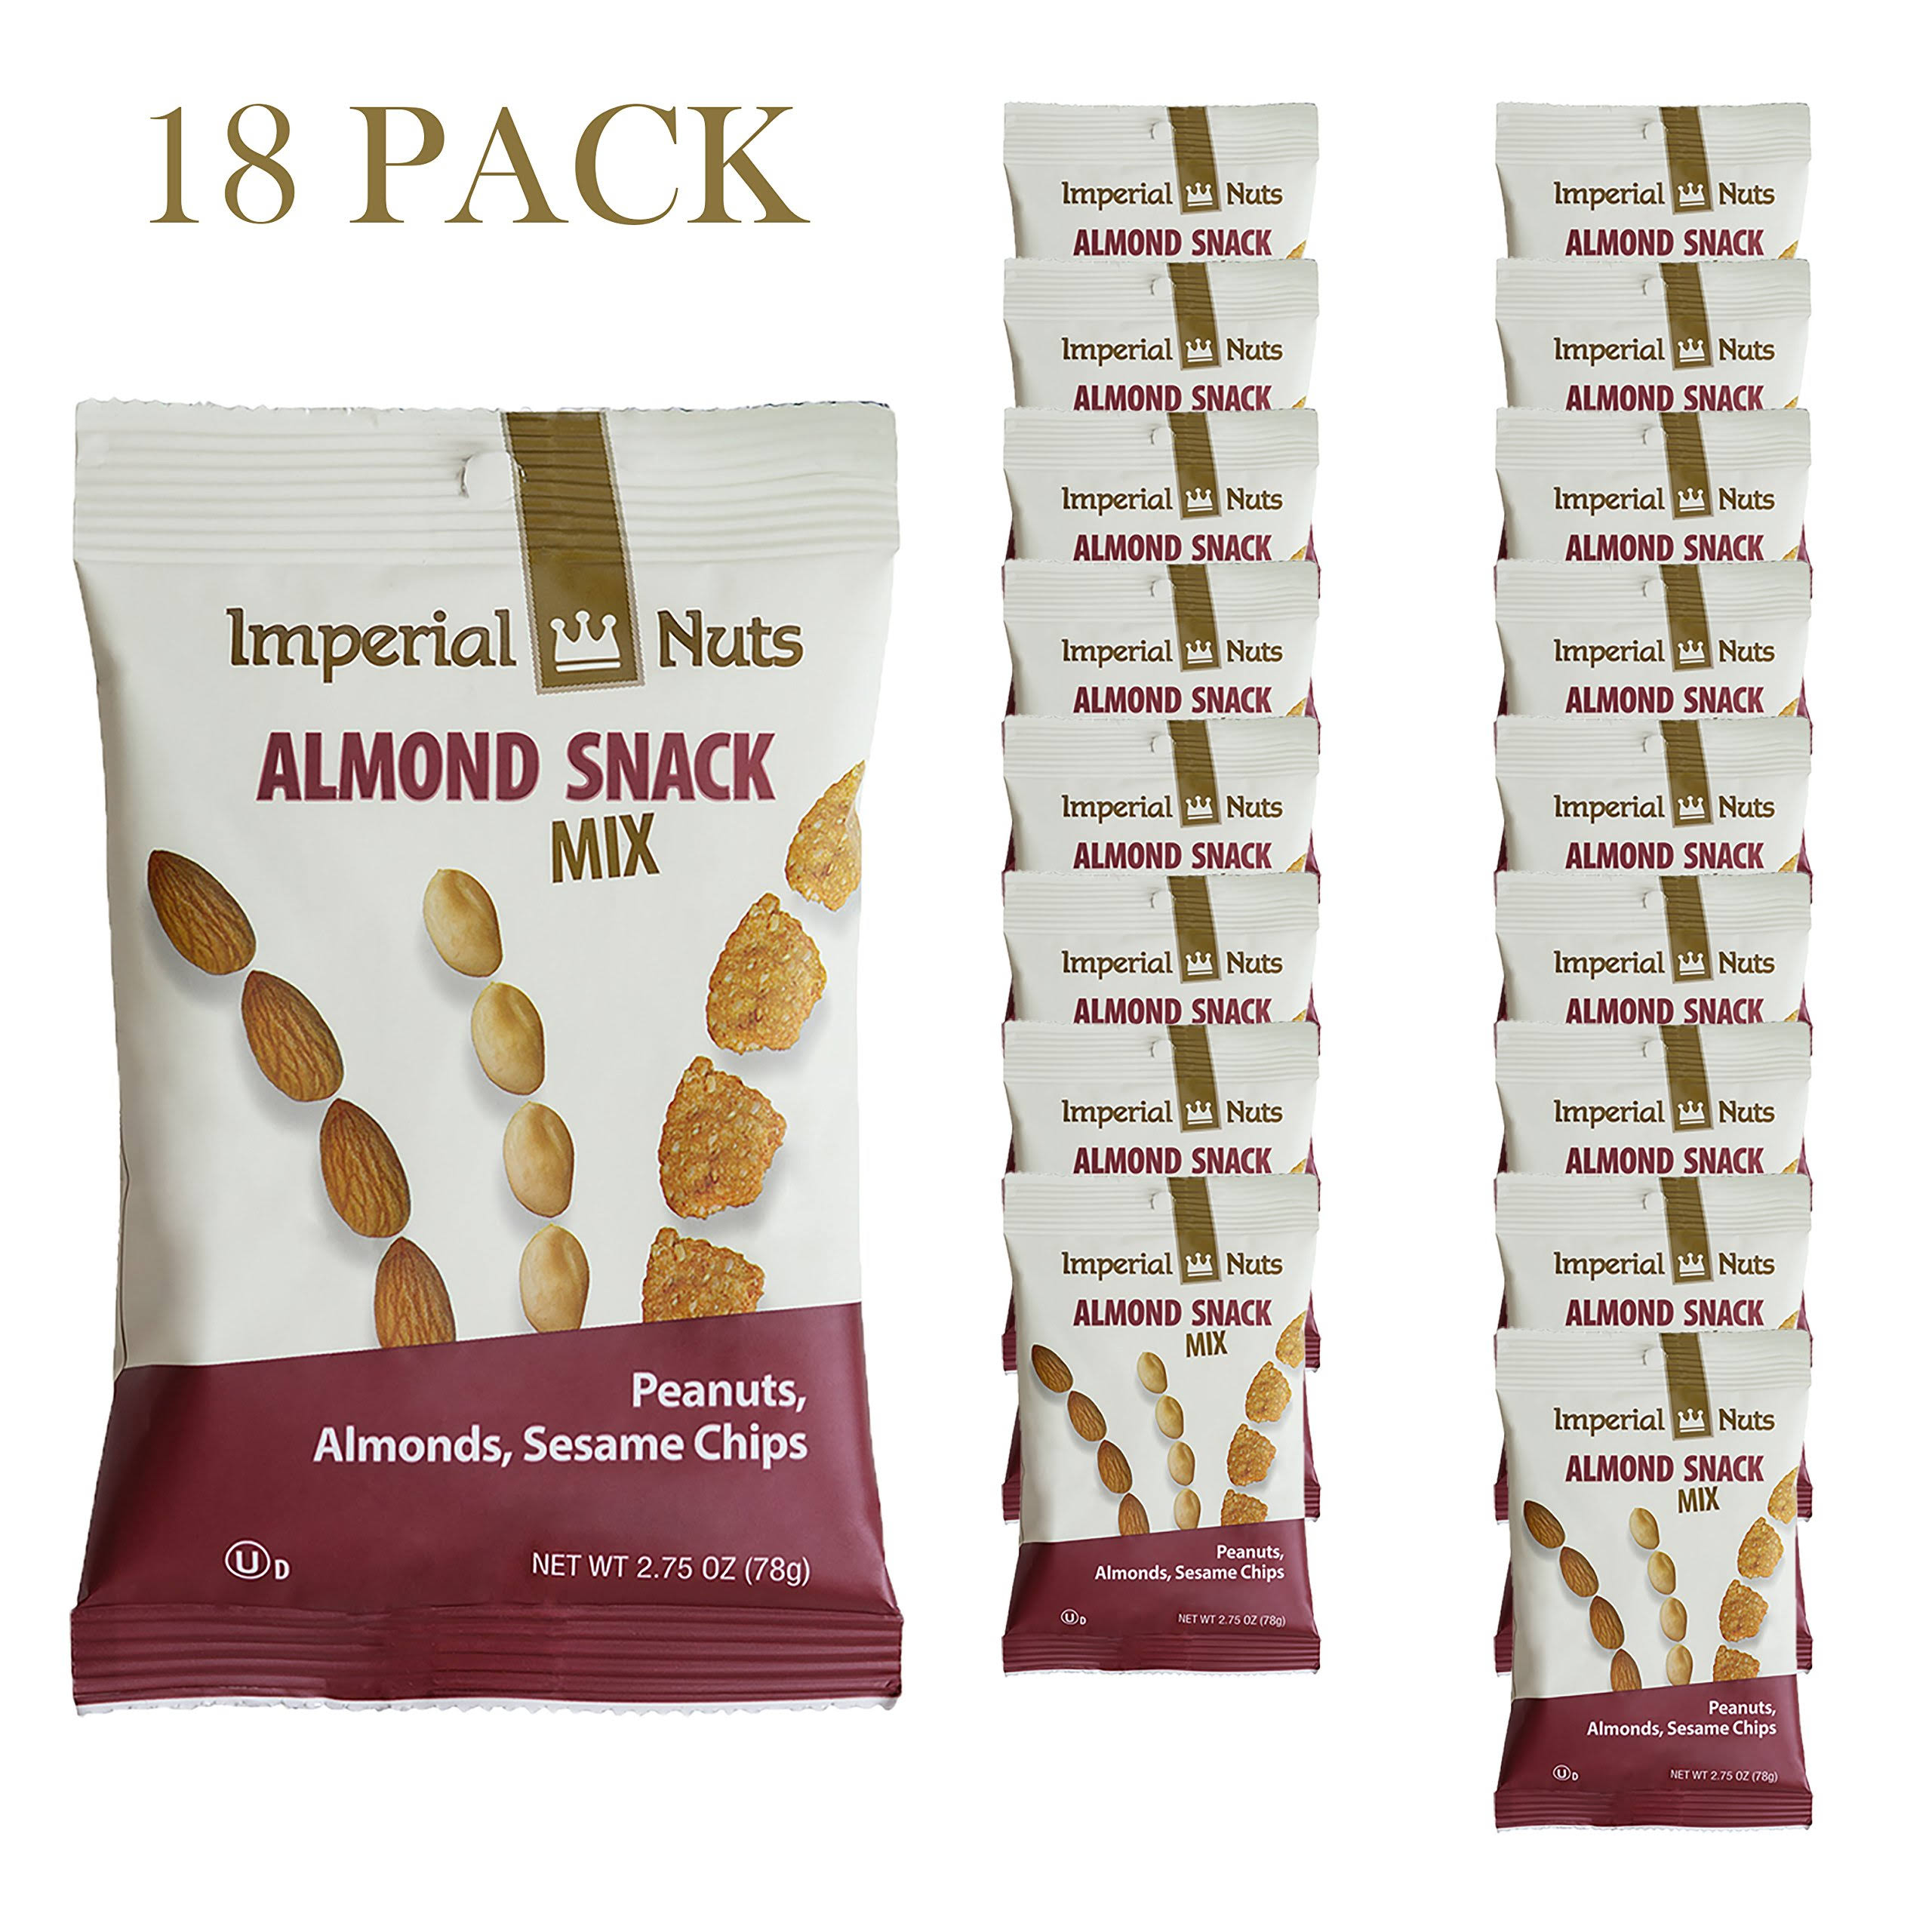 Imperial Nuts Almond Snack Mix (18 Pack x 2.75 oz) - Great Combination of Peanuts Almonds & Sesame Chips Perfect Mini Nut Snack Bags